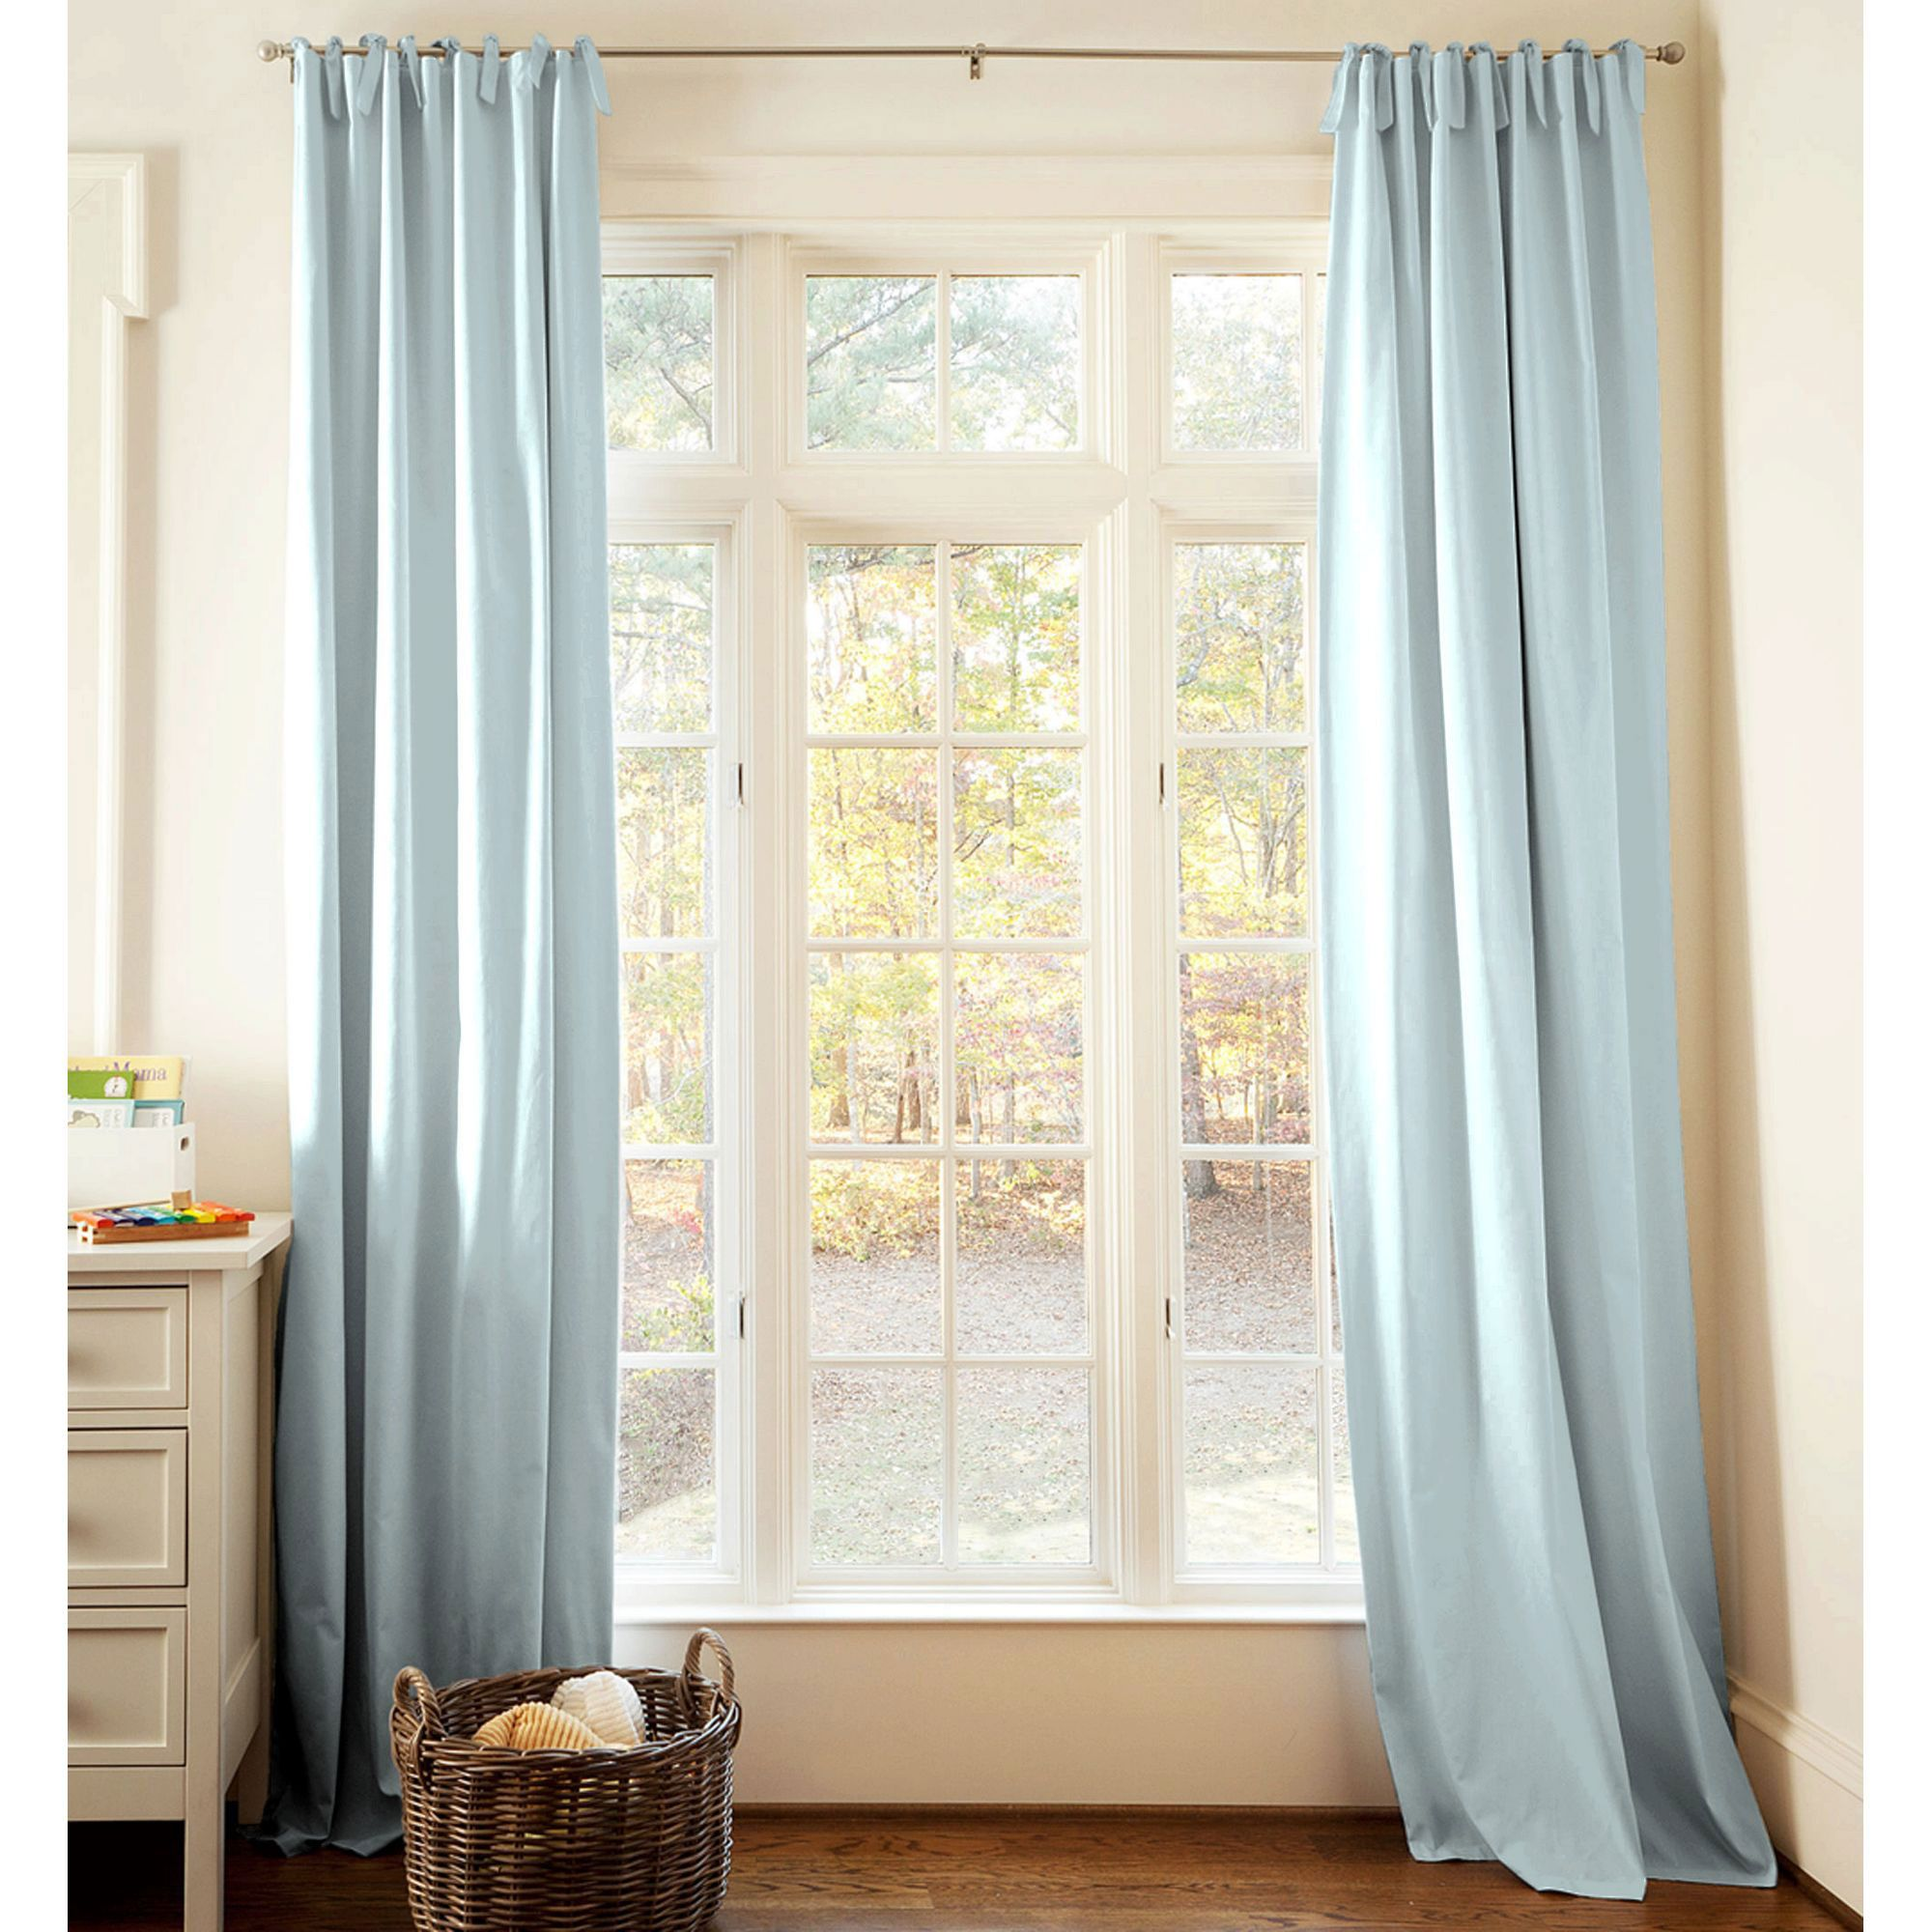 Curtains For A Blue Room Solid Robin S Egg Blue Drape Panel Kid Rooms Light Blue